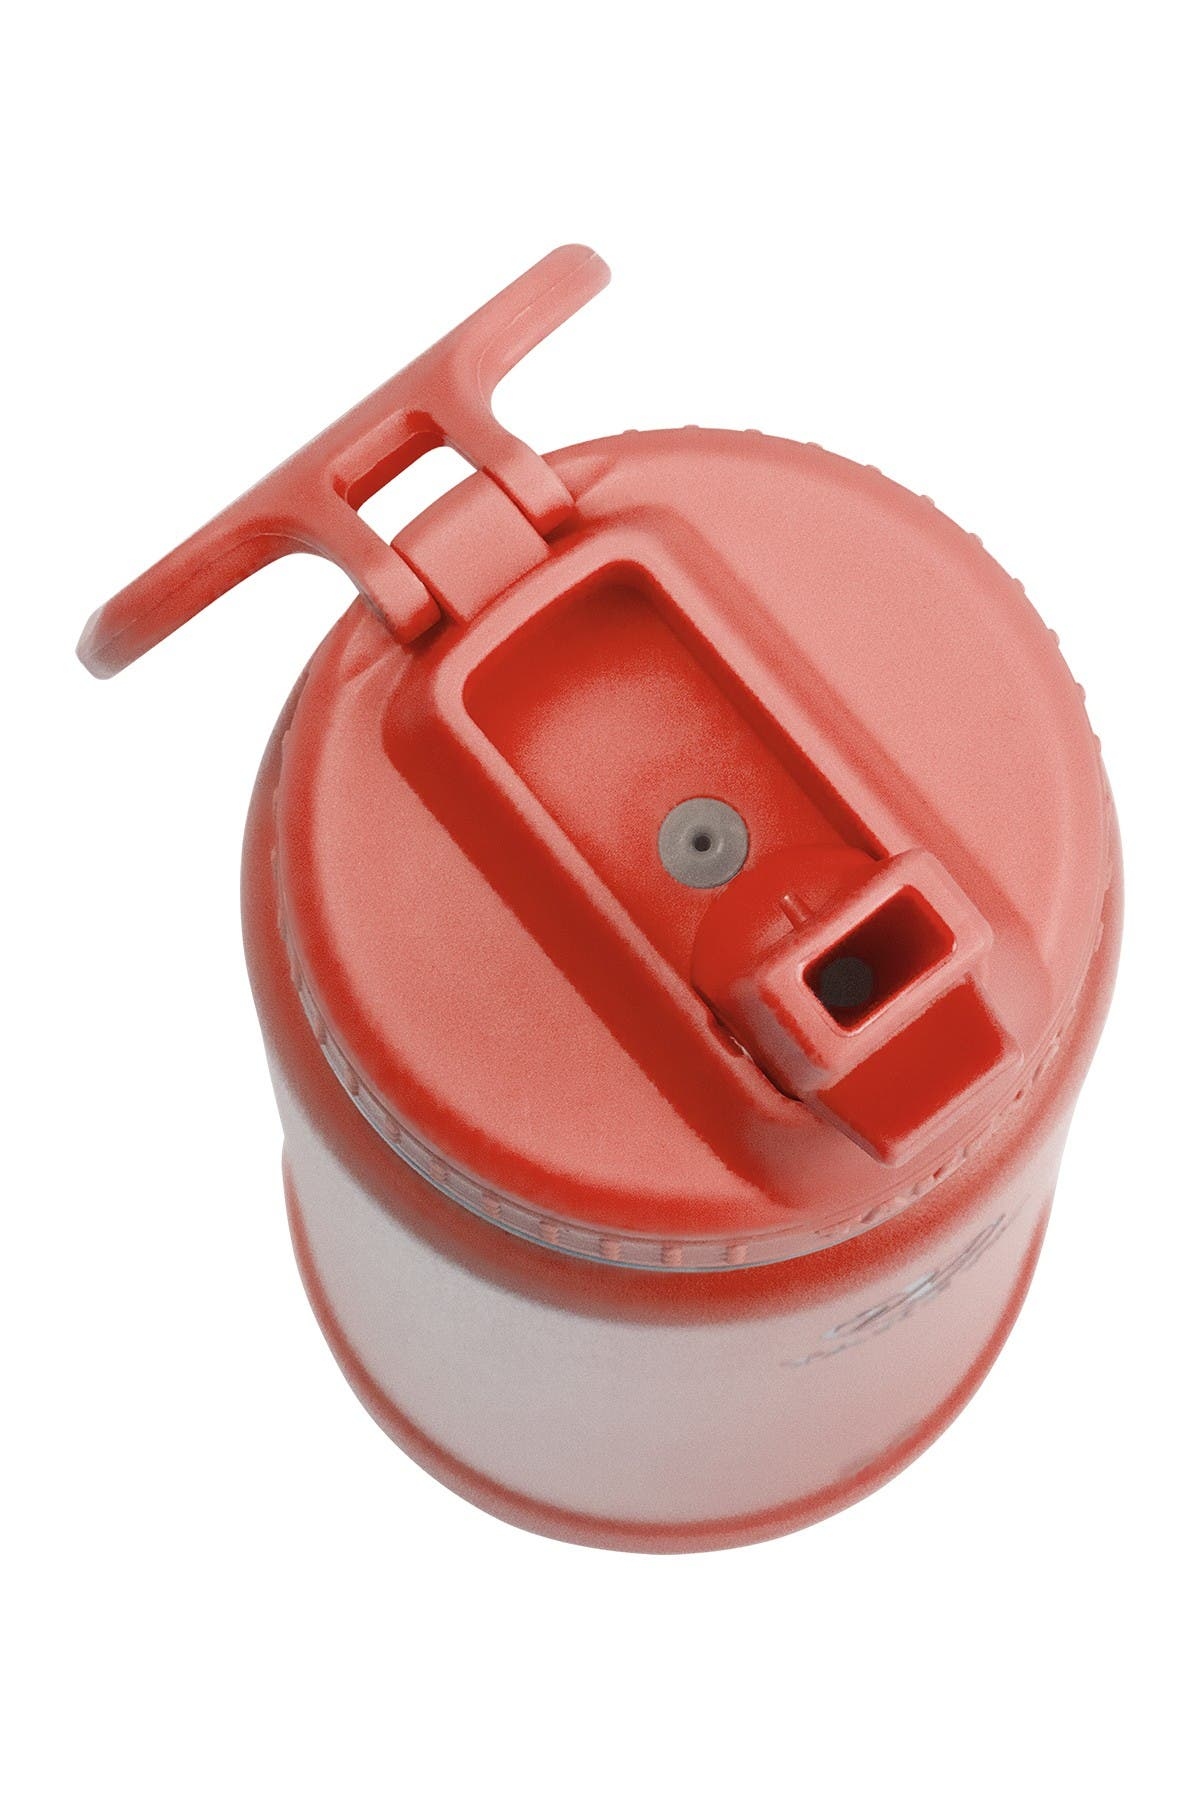 Image of Takeya Actives Insulated 24 oz. Stainless Steel Bottle with Straw Lid - Coral